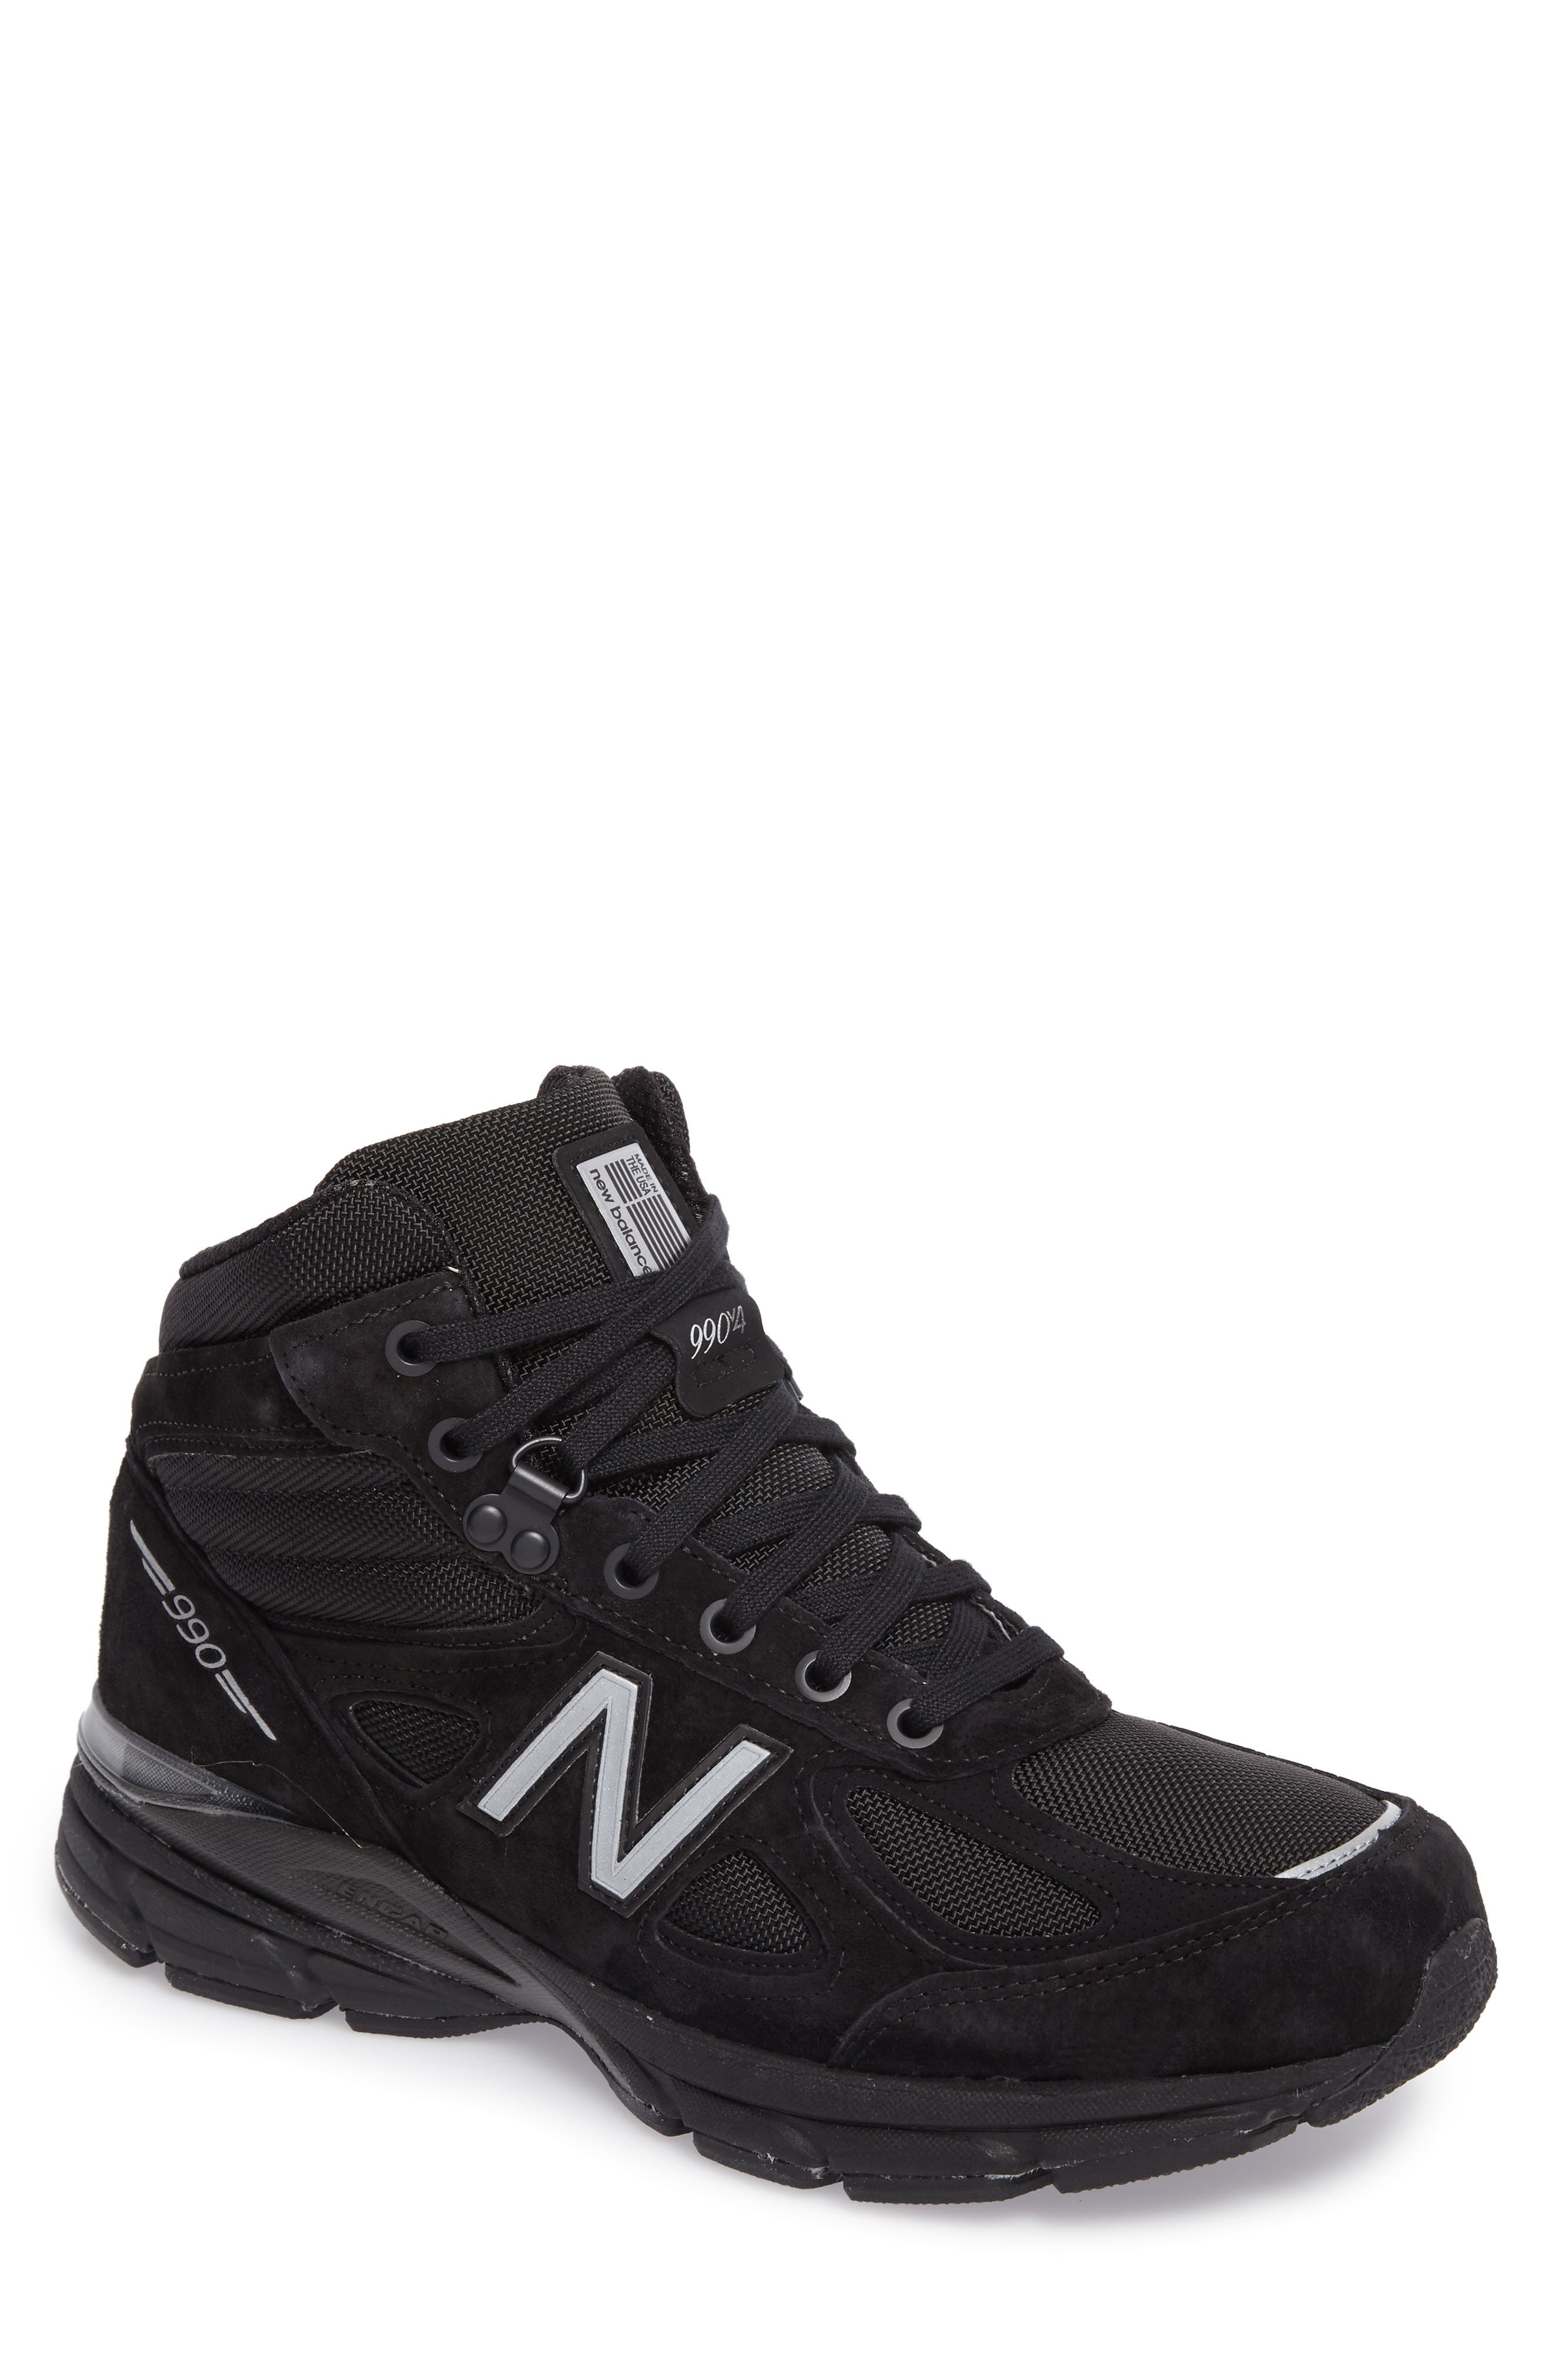 990v4 Water Resistant Sneaker Boot,                             Main thumbnail 1, color,                             Black